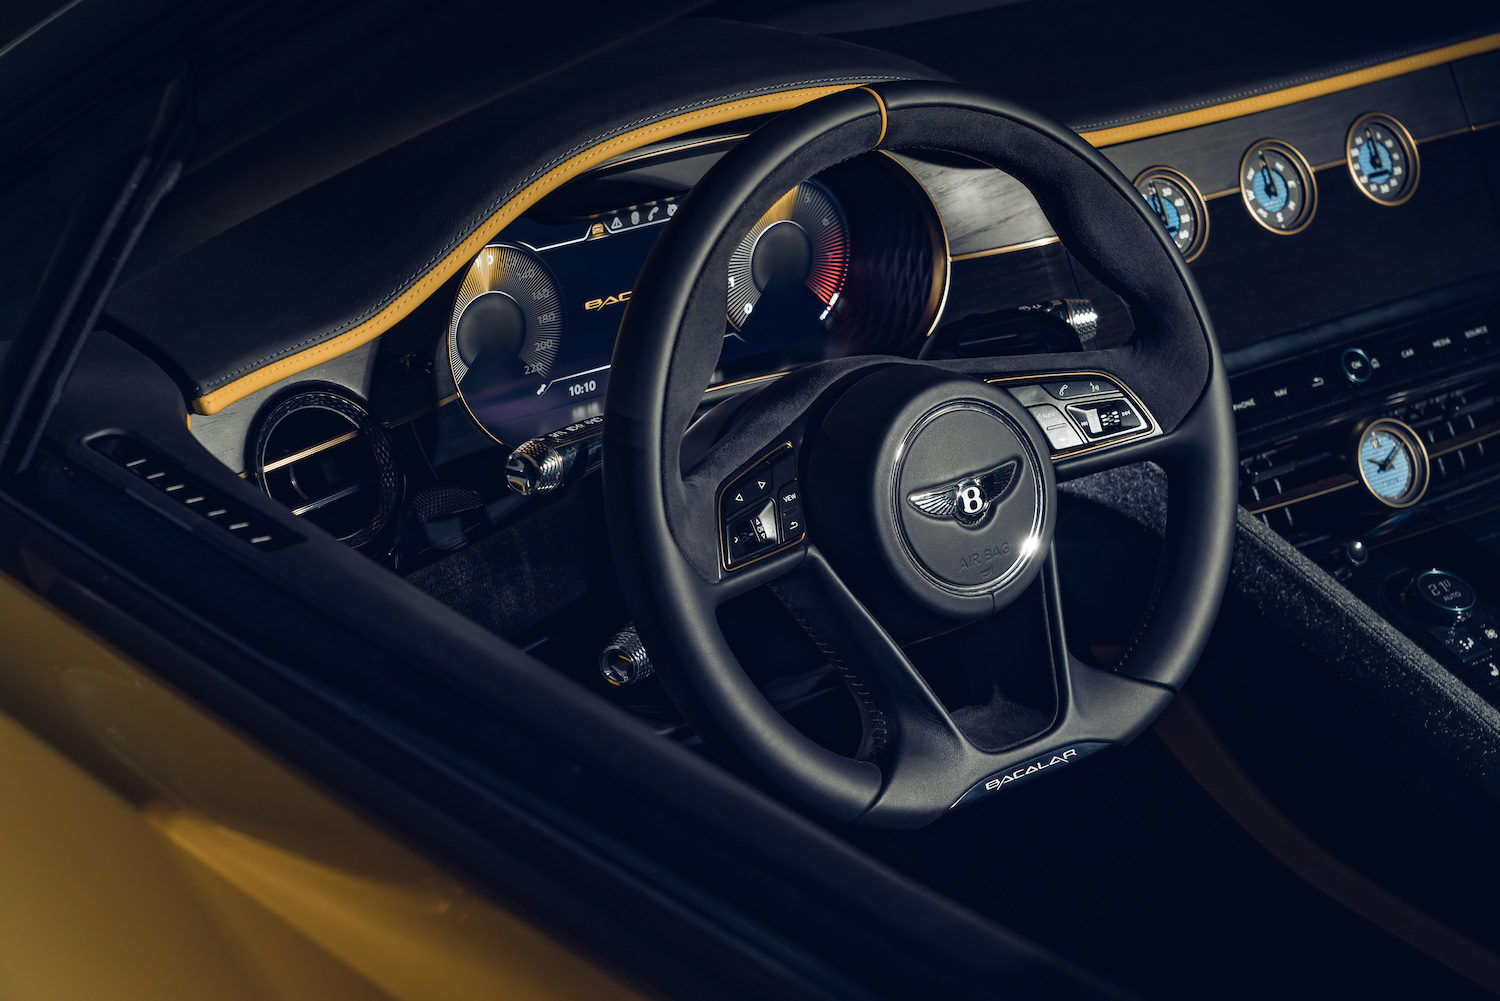 2020 mulliner bacalar barchetta steering wheel closeup